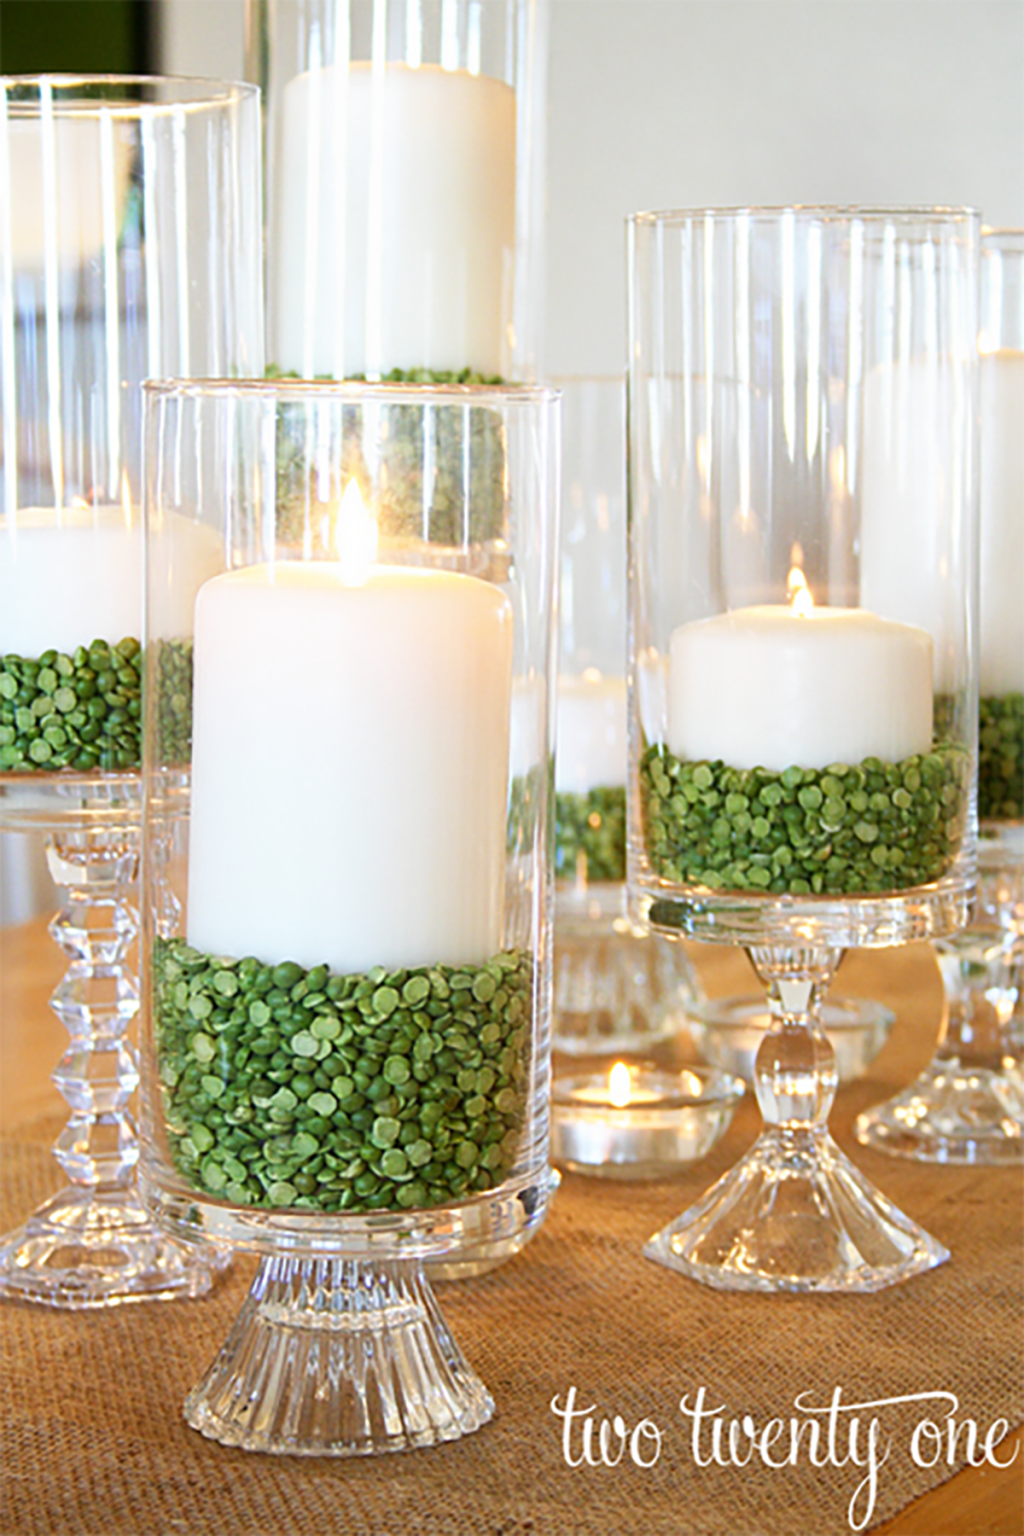 15 Festive DIY St. Patrick\'s Day Decorations for Your Home ...